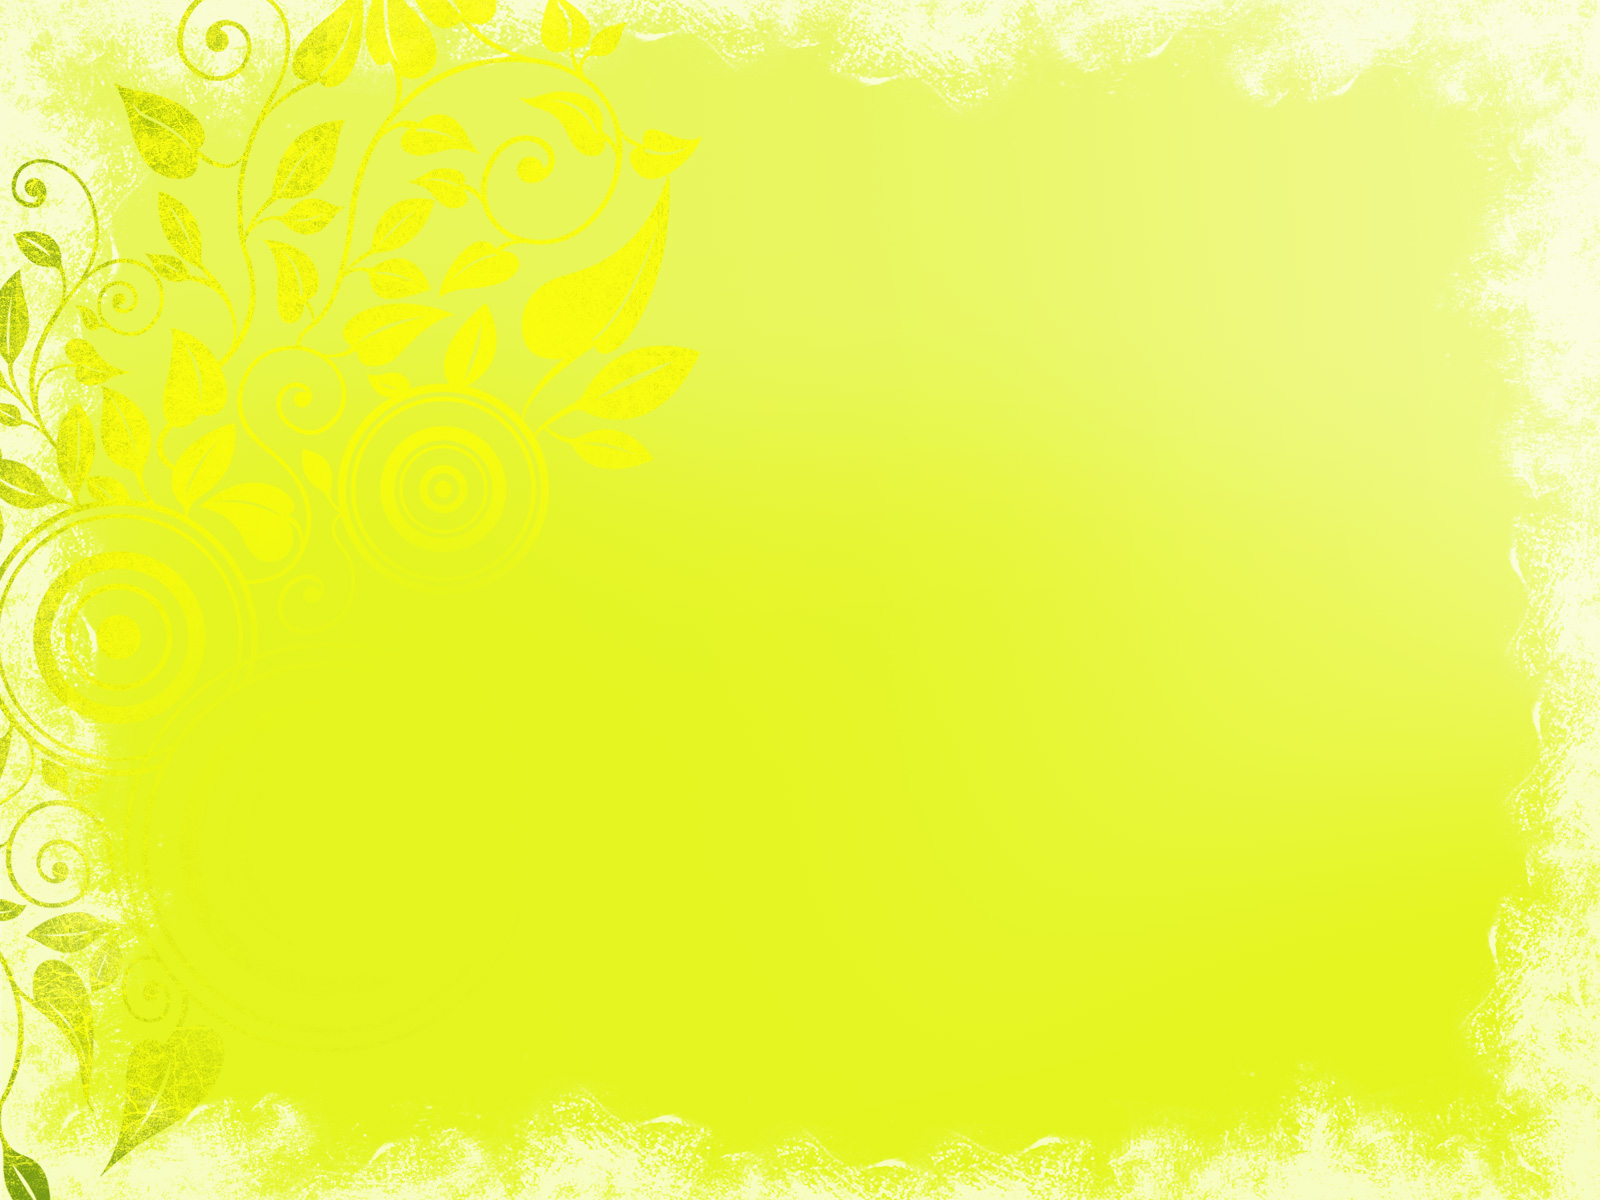 Yellow Ornament PPT Backgrounds